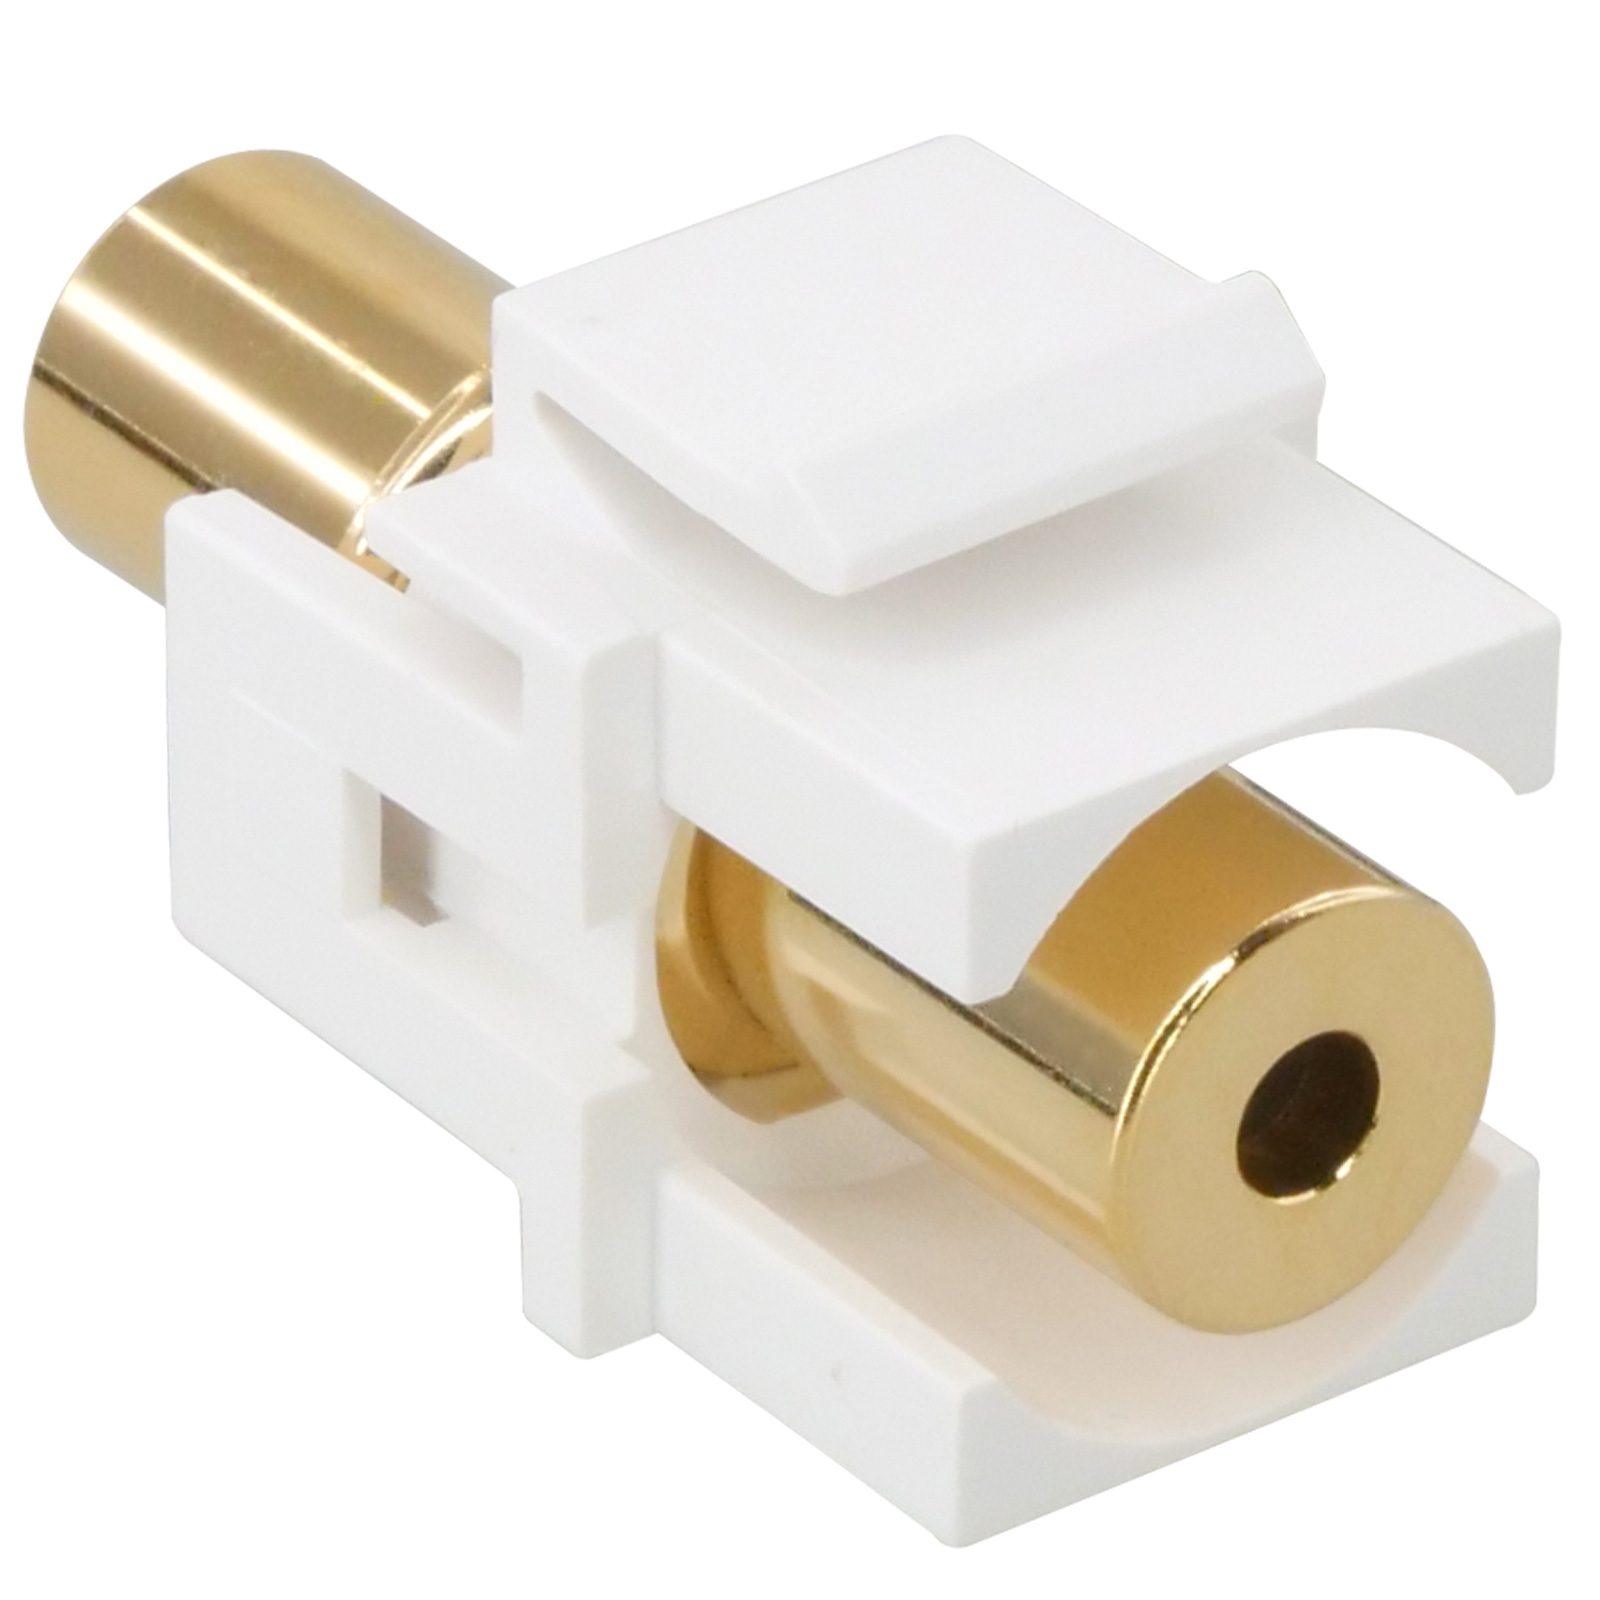 3.5mm TRRS Stereo Female to Female Gold Plated Flush Type Keystone Jack - White